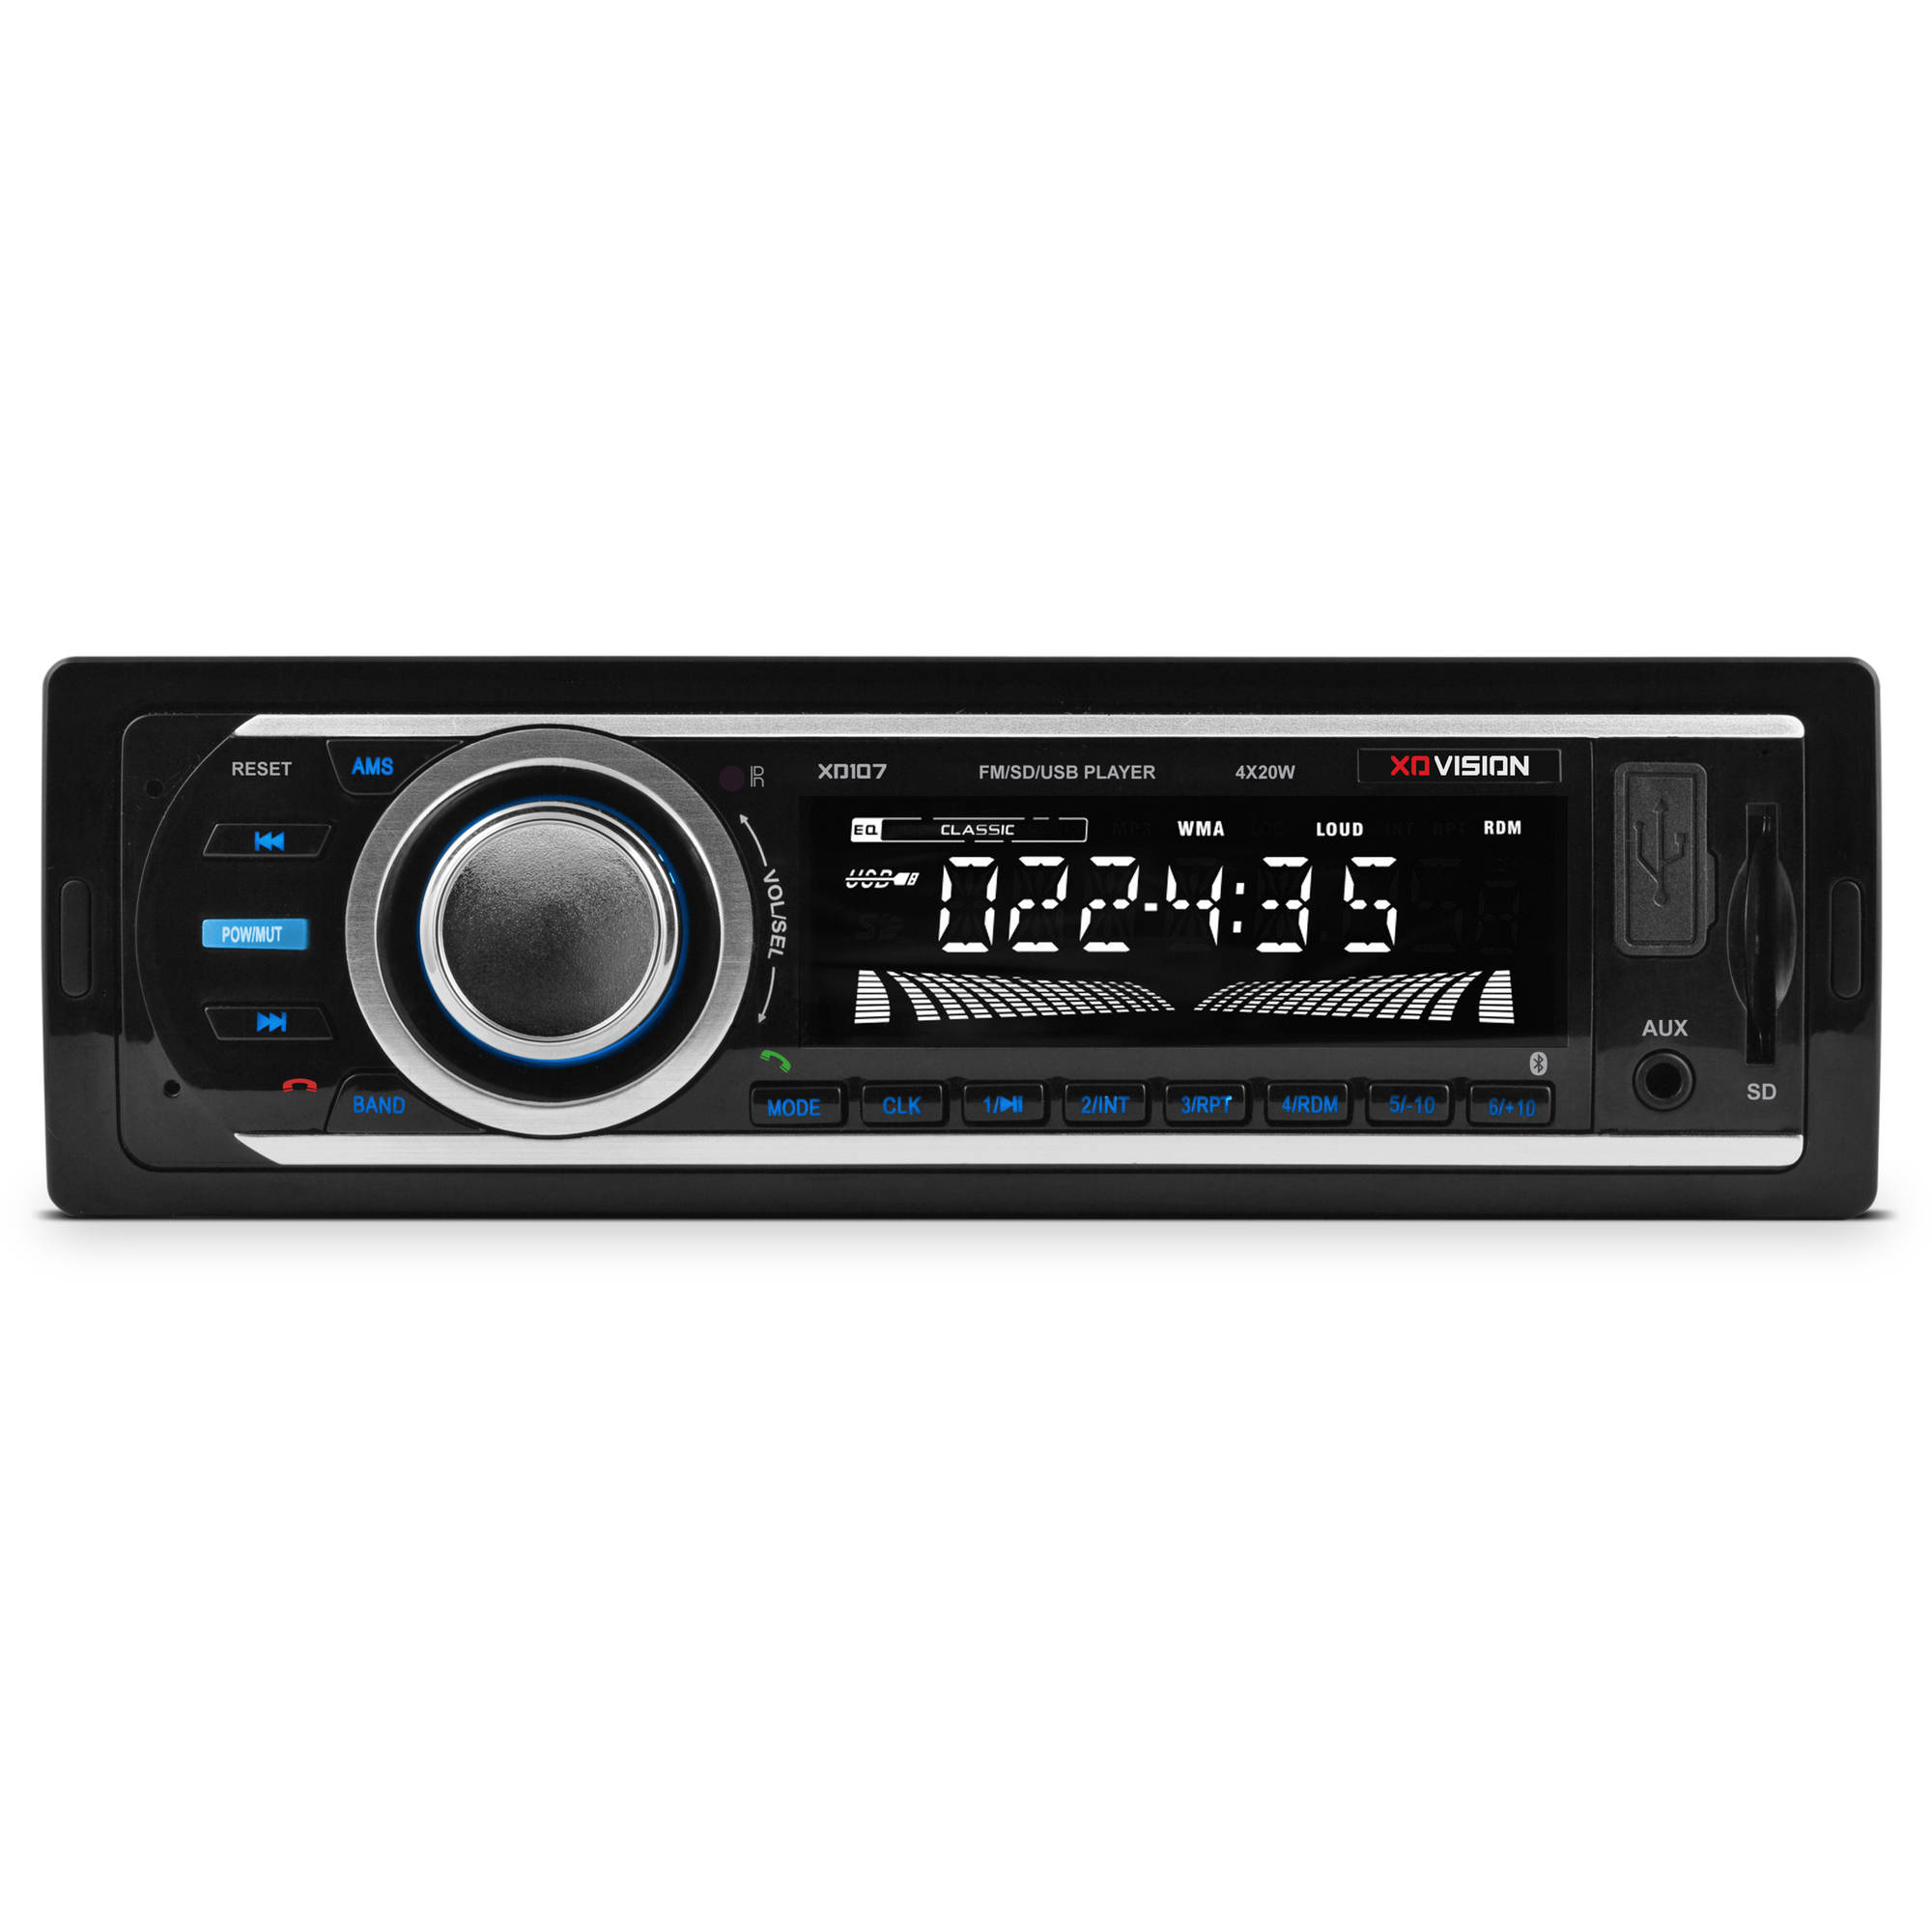 163d50e9 fab0 43d9 bc18 0a15c3289d3d_1.3778917bac34245adec16584bff5b2e5 xo vision xd107bt car stereo mp3 fm receiver with bluetooth best buy radio wire harness at eliteediting.co